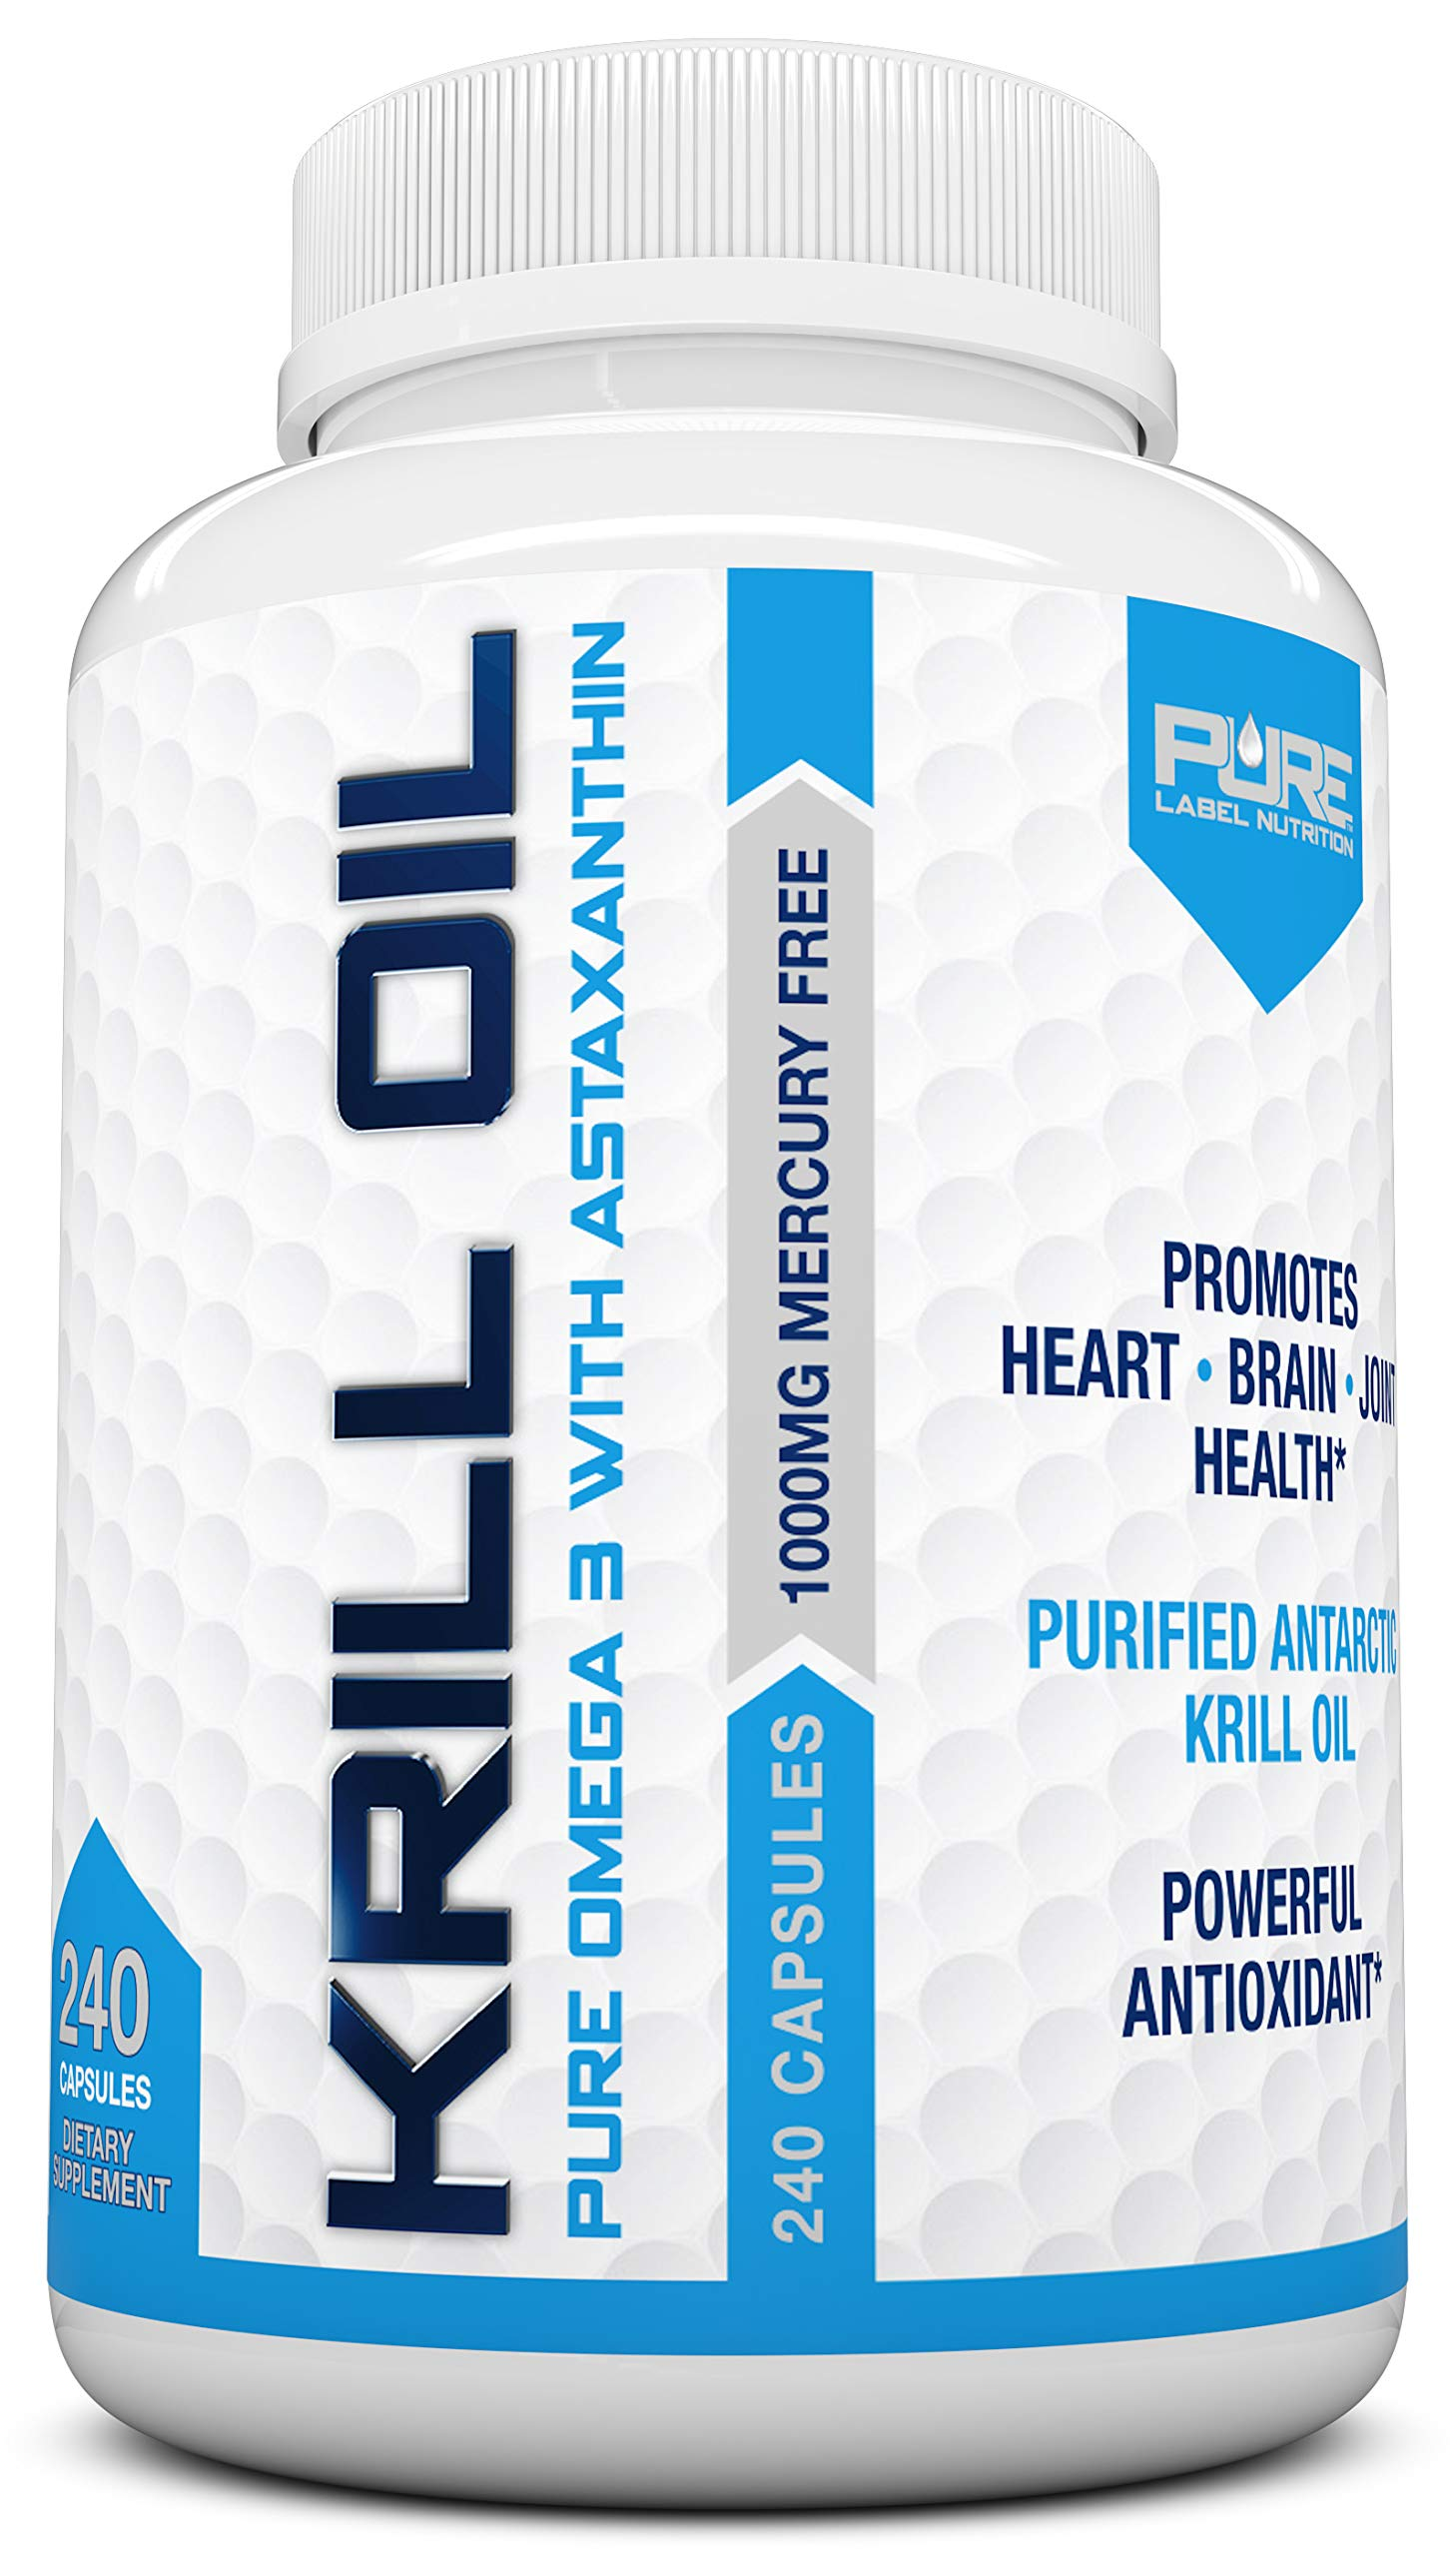 Krill Oil 1000mg with Astaxanthin 240 Caps Omega 3 6 9 - EPA DHA - 100% Purified, Mercury Free and Wild Caught - Non GMO - Gluten Free - Pure Krill Oil - Mega Dose Phospholipids by Pure Label Nutrition